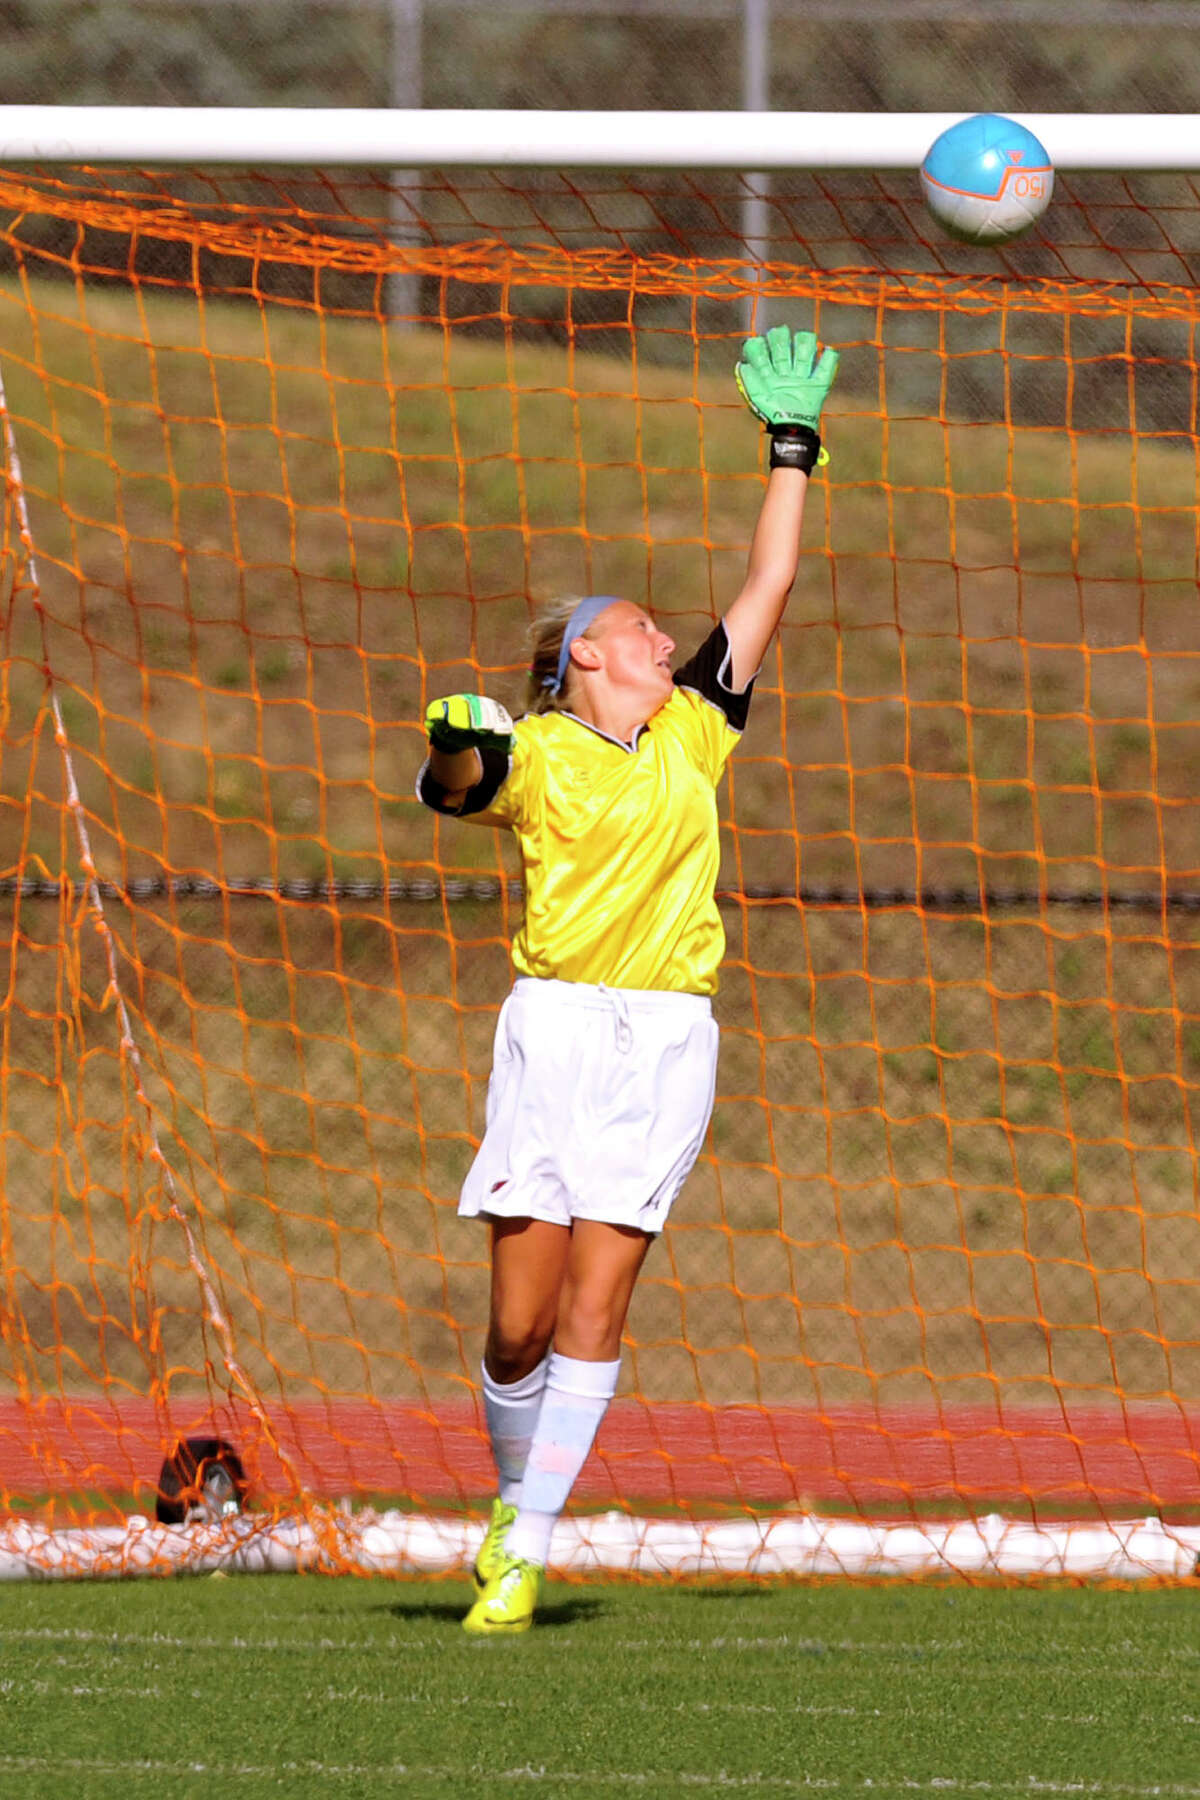 Greenwich goalie Emma Barefoot reaches for a ball just out of reach for a goal from the foot of Darien's Erin Karczewski during their soccer game at Greenwich High School in Greenwich, Conn., on Wednesday, Sept. 10, 2014. Darien won, 3-0.